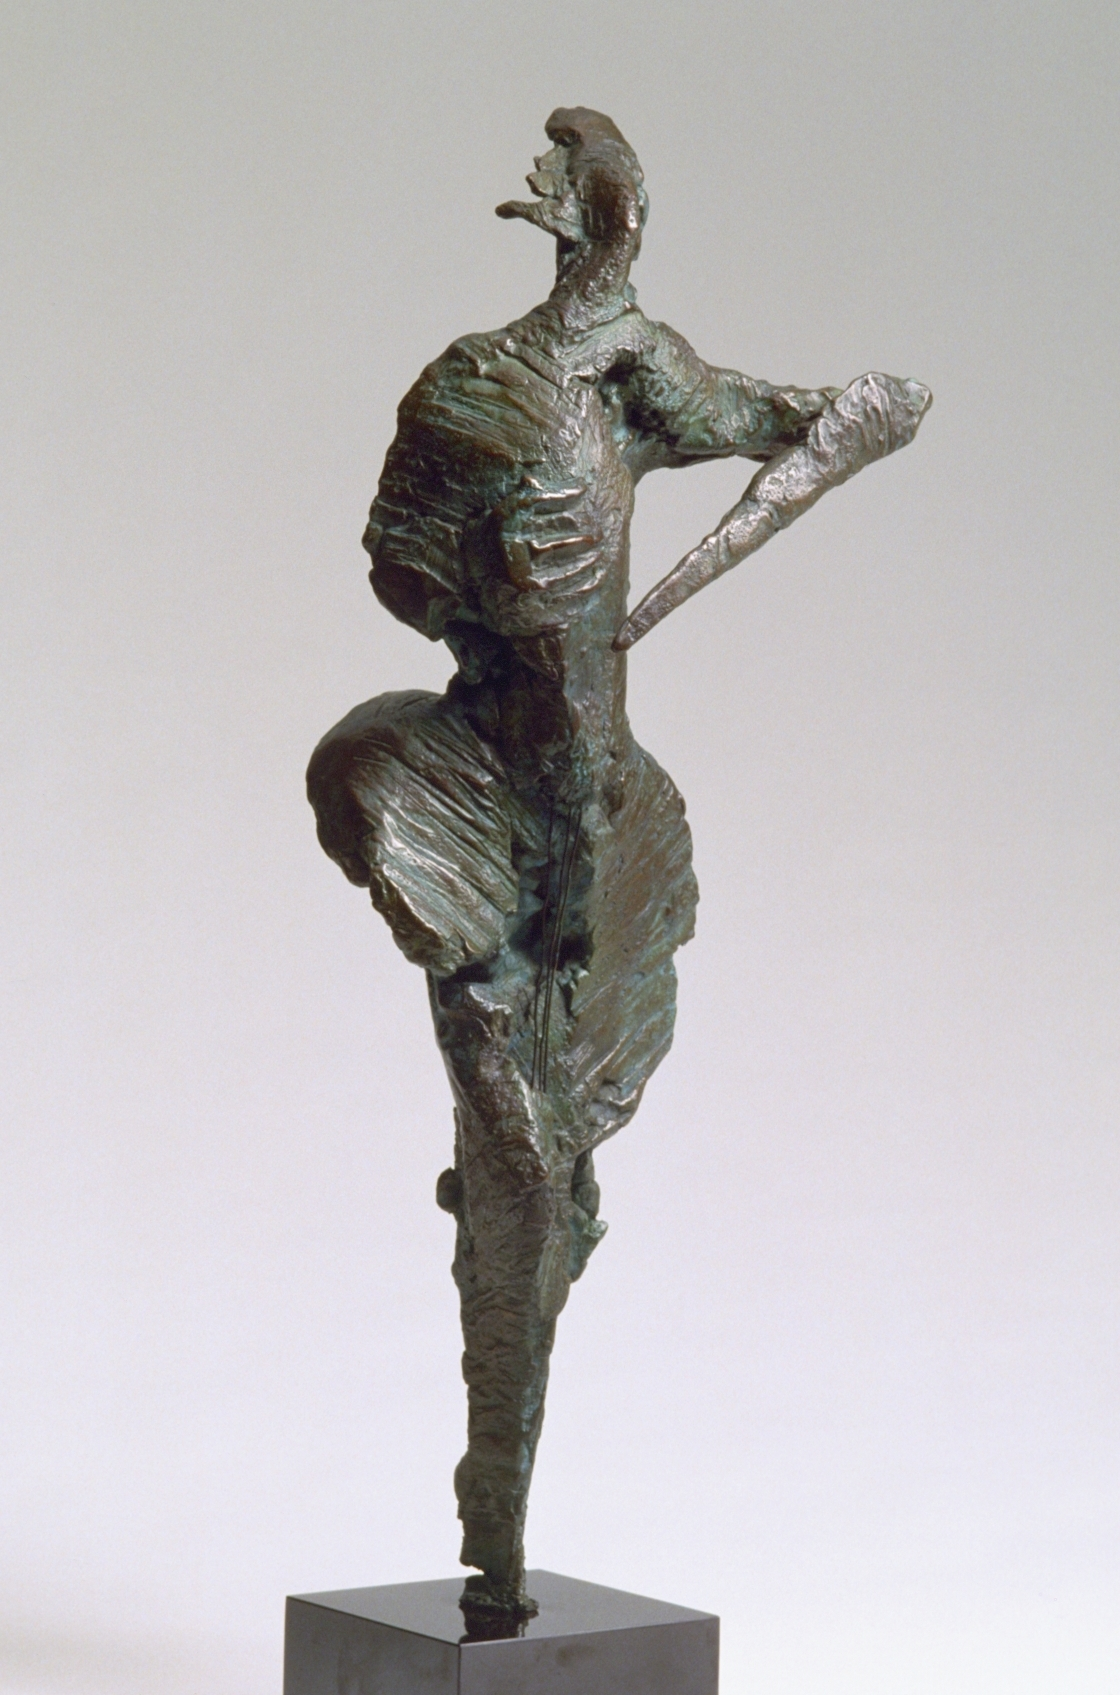 """DETAILS   Music  Bronze sculpture on wood base Edition 1/8 31 x 13 x 8 inches  EXHIBITION HISTORY 1989, Centro Cultural, Gral. San Martin, Buenos Aires, Argentina 1990, Museo de Artes Plasticas """"Eduardo Sivori"""", Buenos Aires, Argentina 2010, Broadfoot & Broadfoot, New York, NY 2012, Jewish Heritage Museum of Monmouth County, Freehold, NJ   COLLECTIONS Permanent collection of the Jewish Heritage Museum of Monmouth County, Freehold, NJ Private collection, New York Private collection, New Jersey Private collection, Texas"""